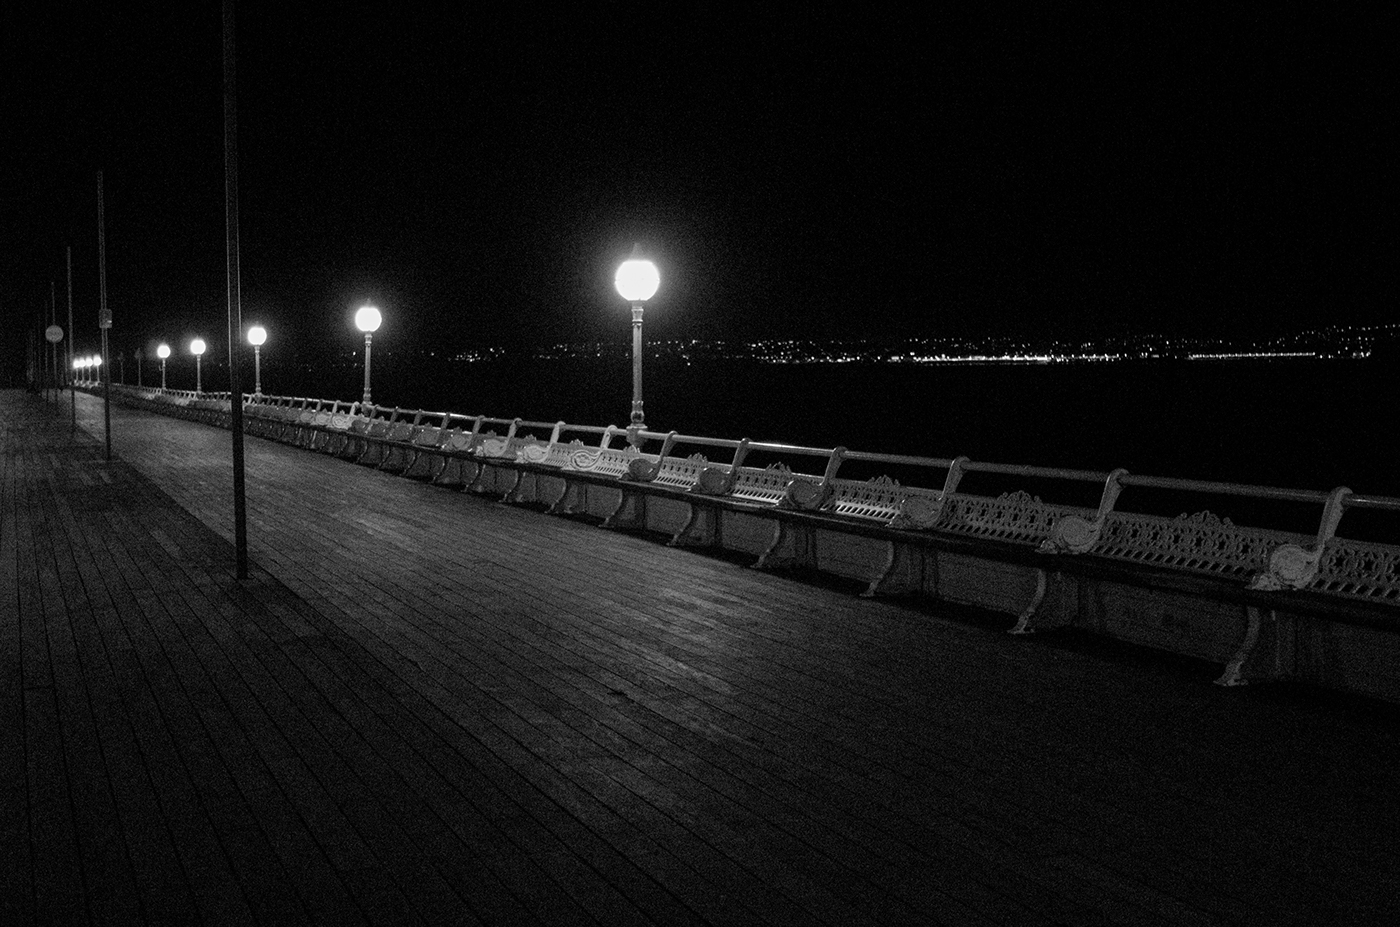 A cold and lonely pier.